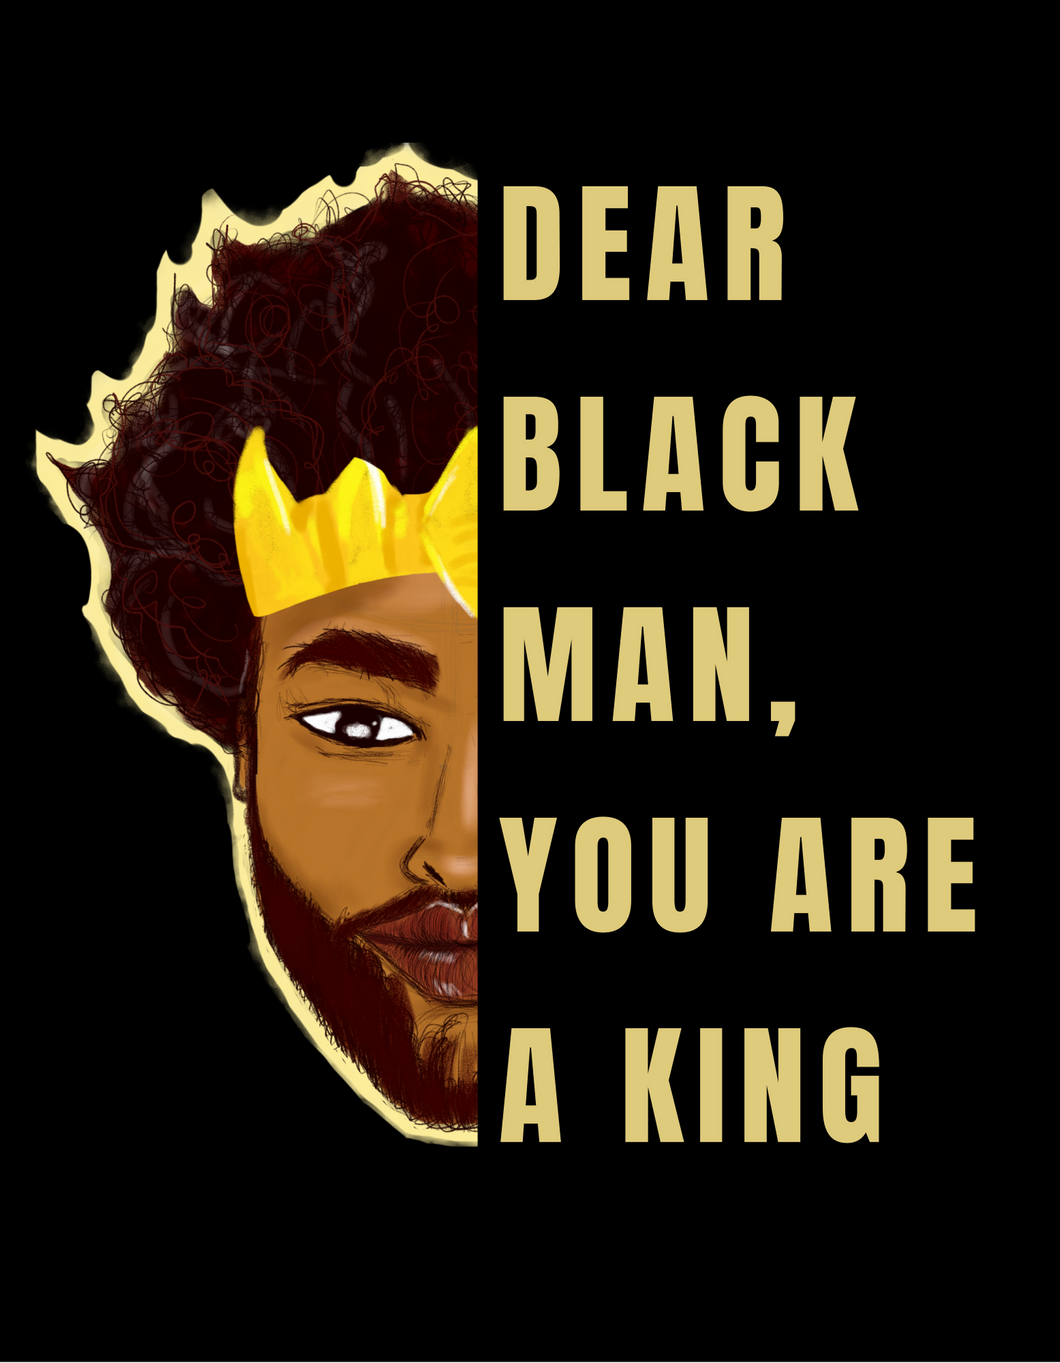 Dear Black Man - King